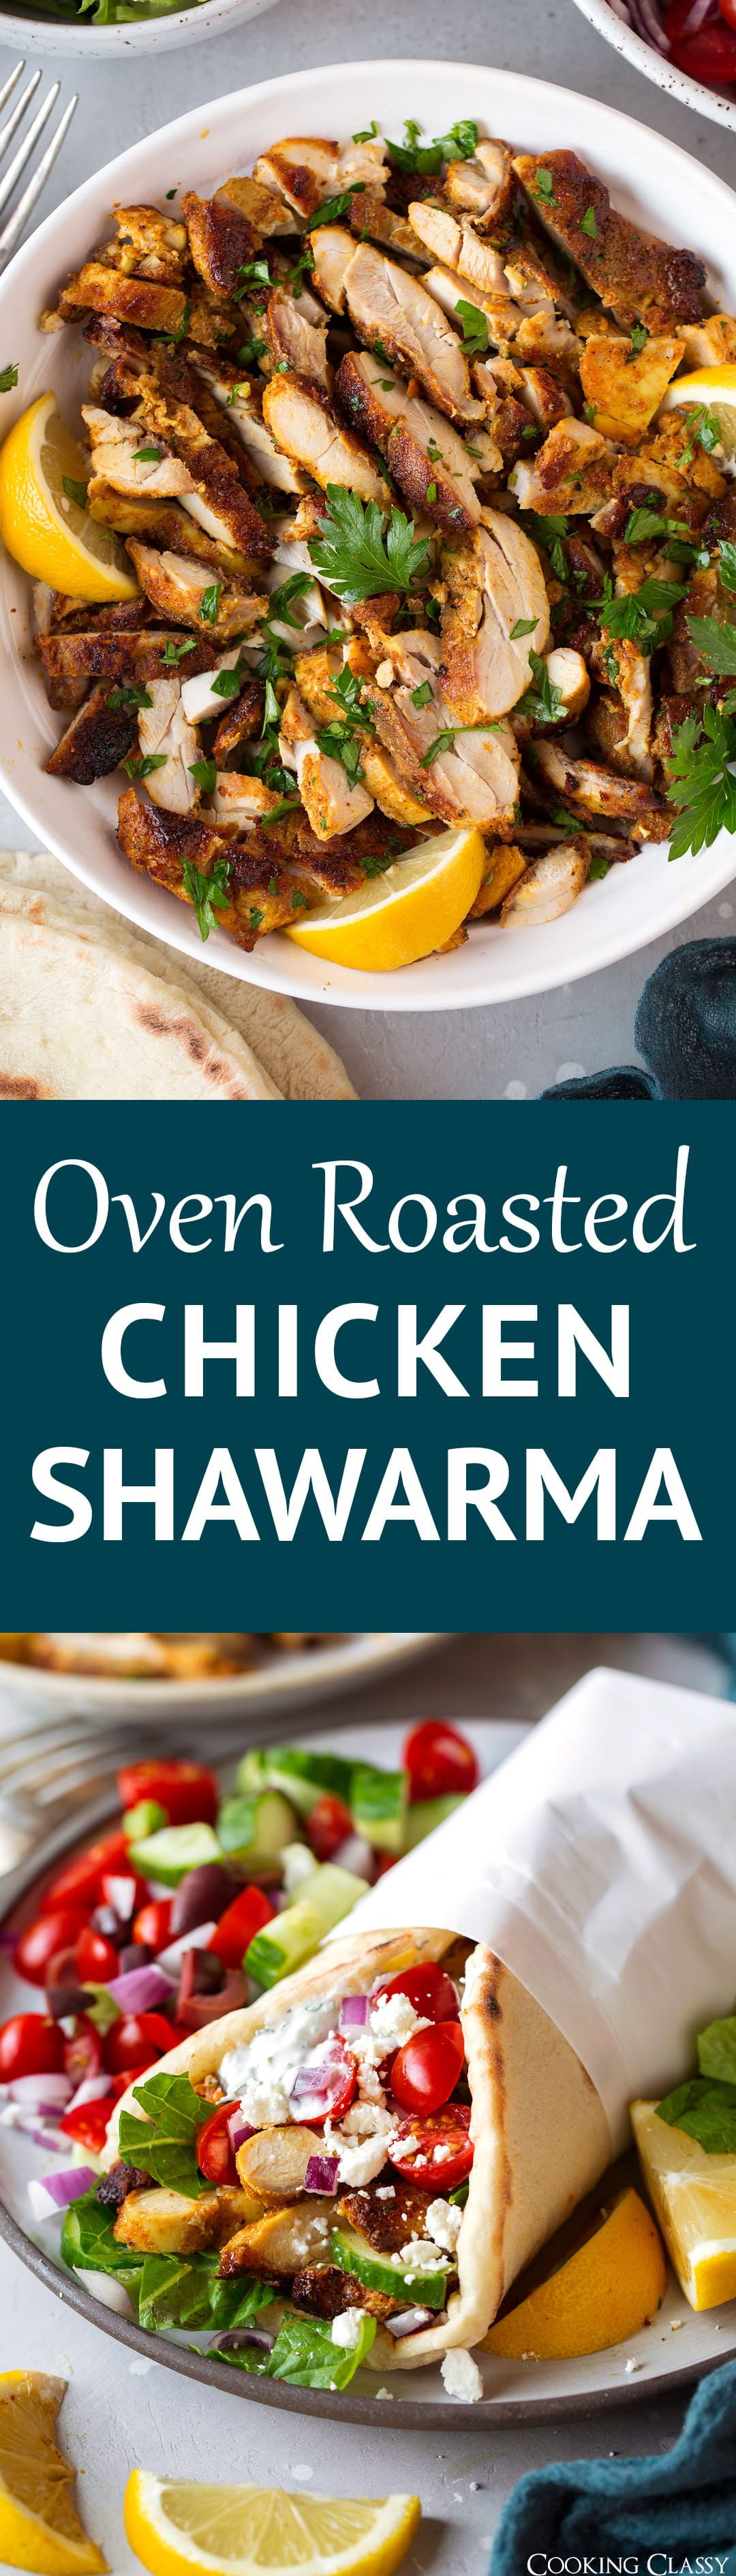 Oven Roasted Chicken Shawarma - it's is all of my dinner dreams come true! This Middle Eastern inspired chicken is boasting with a delicious blend of spices, it's perfectly golden brown with a tender interior and crisp edges and it's so easy to make. #chicken #recipe #healthyrecipe #chickenshawarma